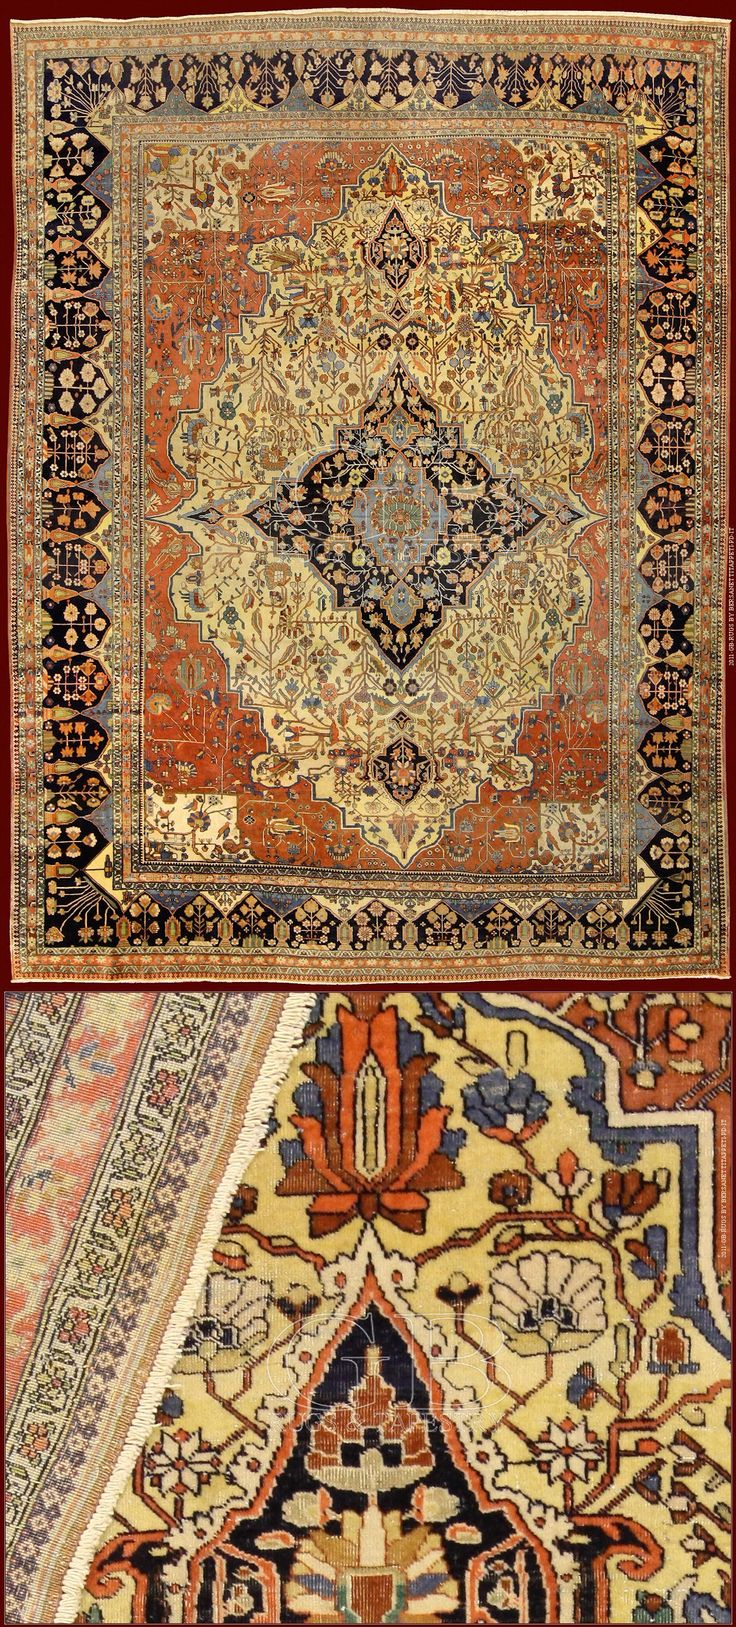 cm 340 x 255ft 11'2 x 8'4 Cod:: 141134944580 Extraordinary KASHAN MOHTASHAM RUG with very dense knot attributable to master Kashan Mohtasham's manufactures! The pile is so shiny to seem knotted with the silk. It's a exemplary of old epoch (end of 19th. century) in perfect state of conservation: it has never had restorations and it is completely full pile, rare thing in rugs as this.